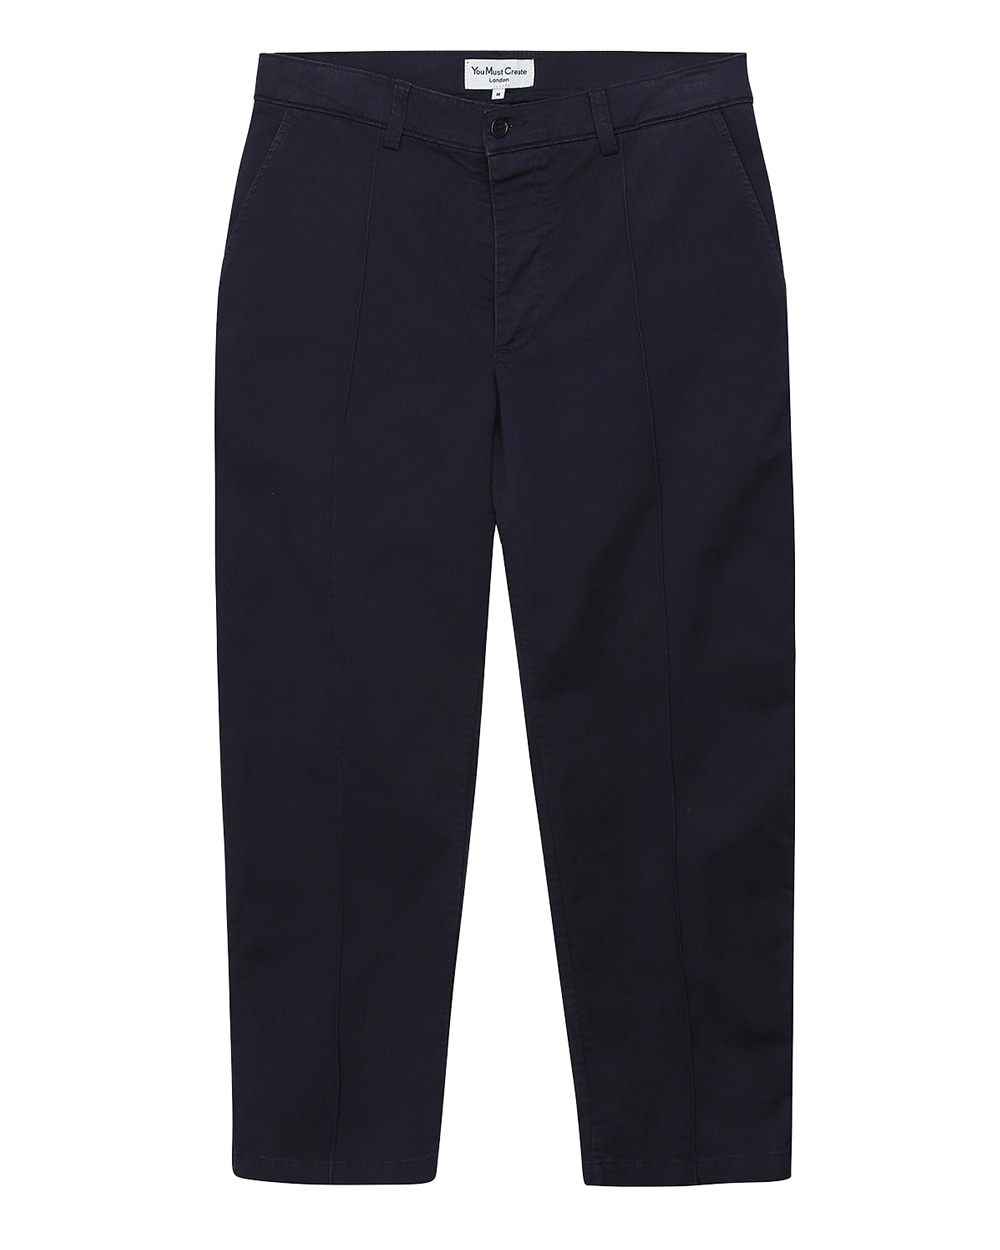 YMC Hand Me Down Trouser (Navy)